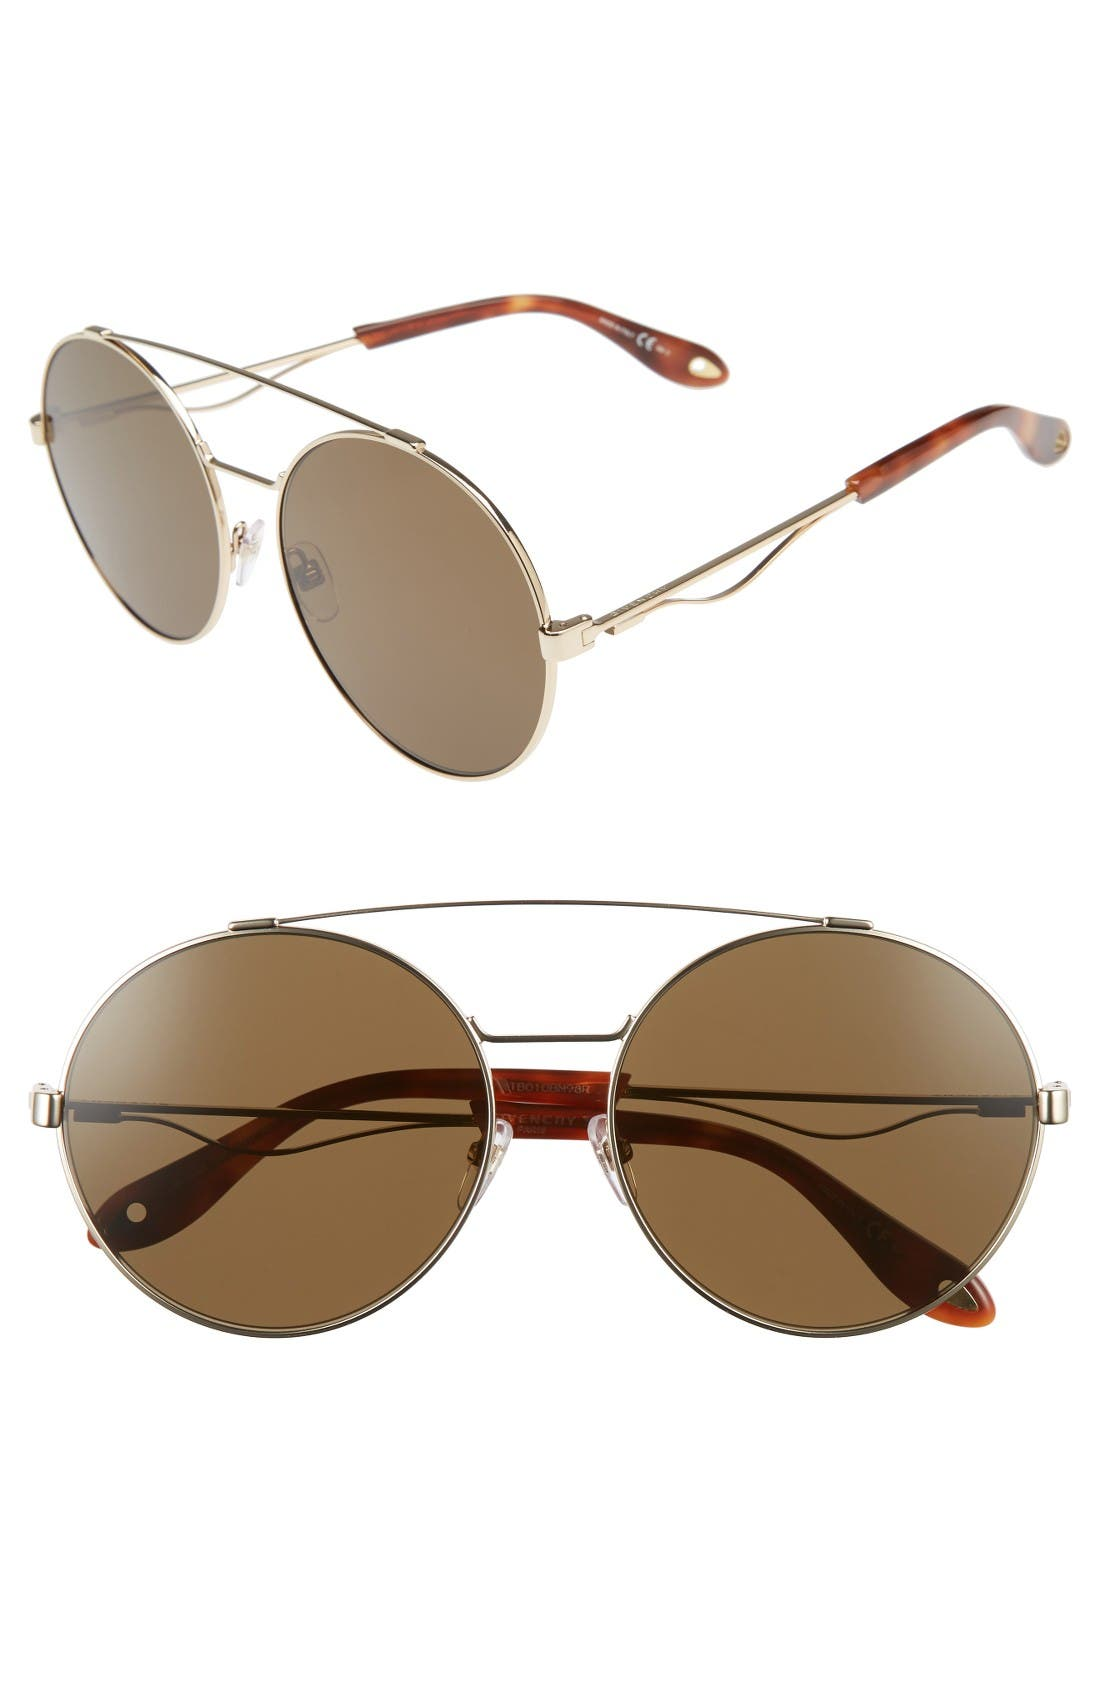 62mm Round Sunglasses,                         Main,                         color, Gold